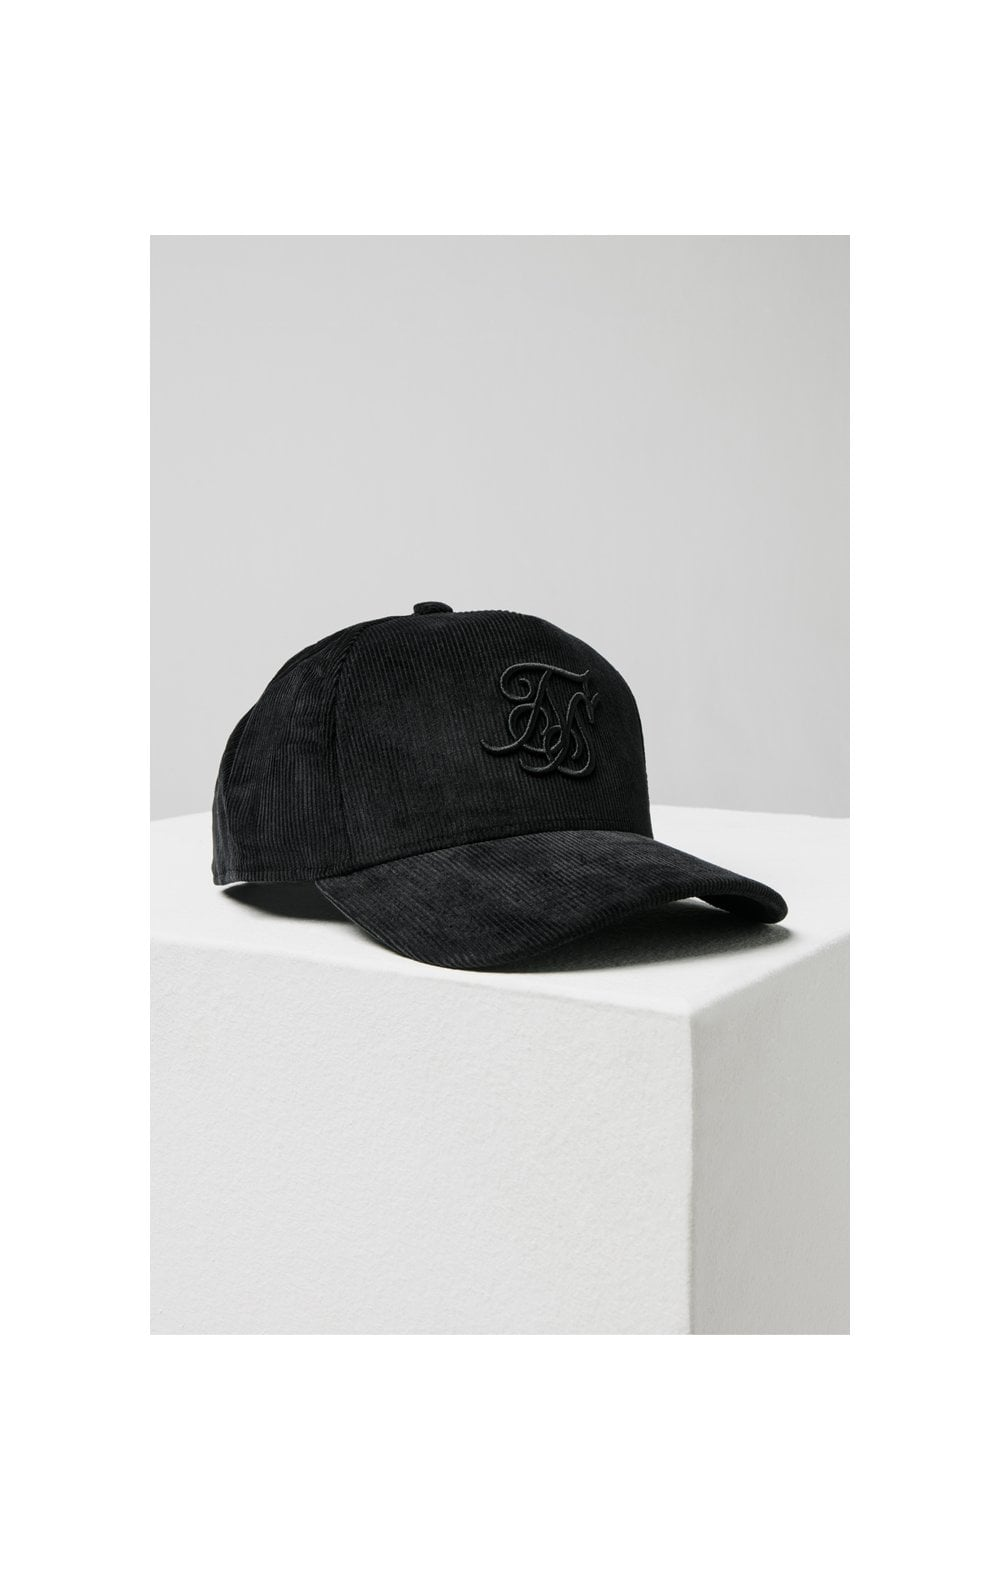 Load image into Gallery viewer, SikSilk Corduroy Full Trucker - Black (4)